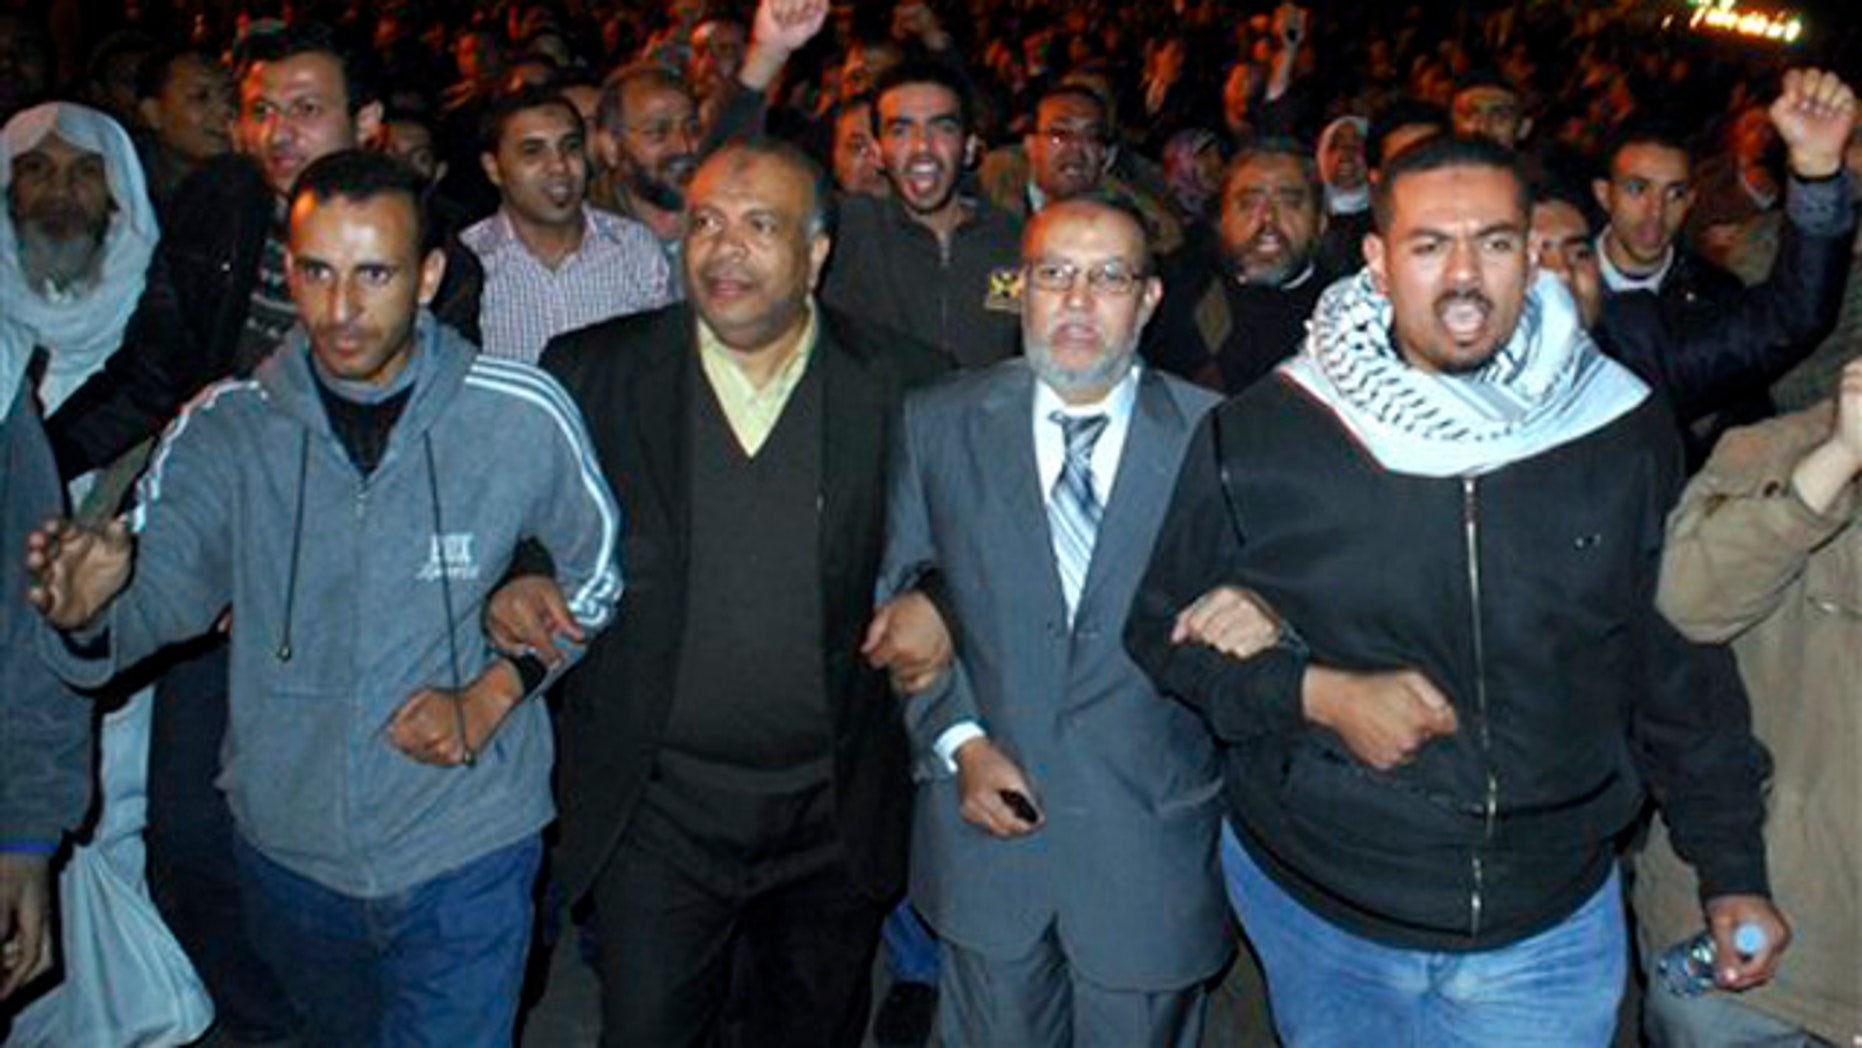 Jan. 30, 2011: Egyptian Brotherhood seniors Essam el-Erian, center right, and Saad el-Katatni, center left, take part in a protest in Cairo, Egypt.